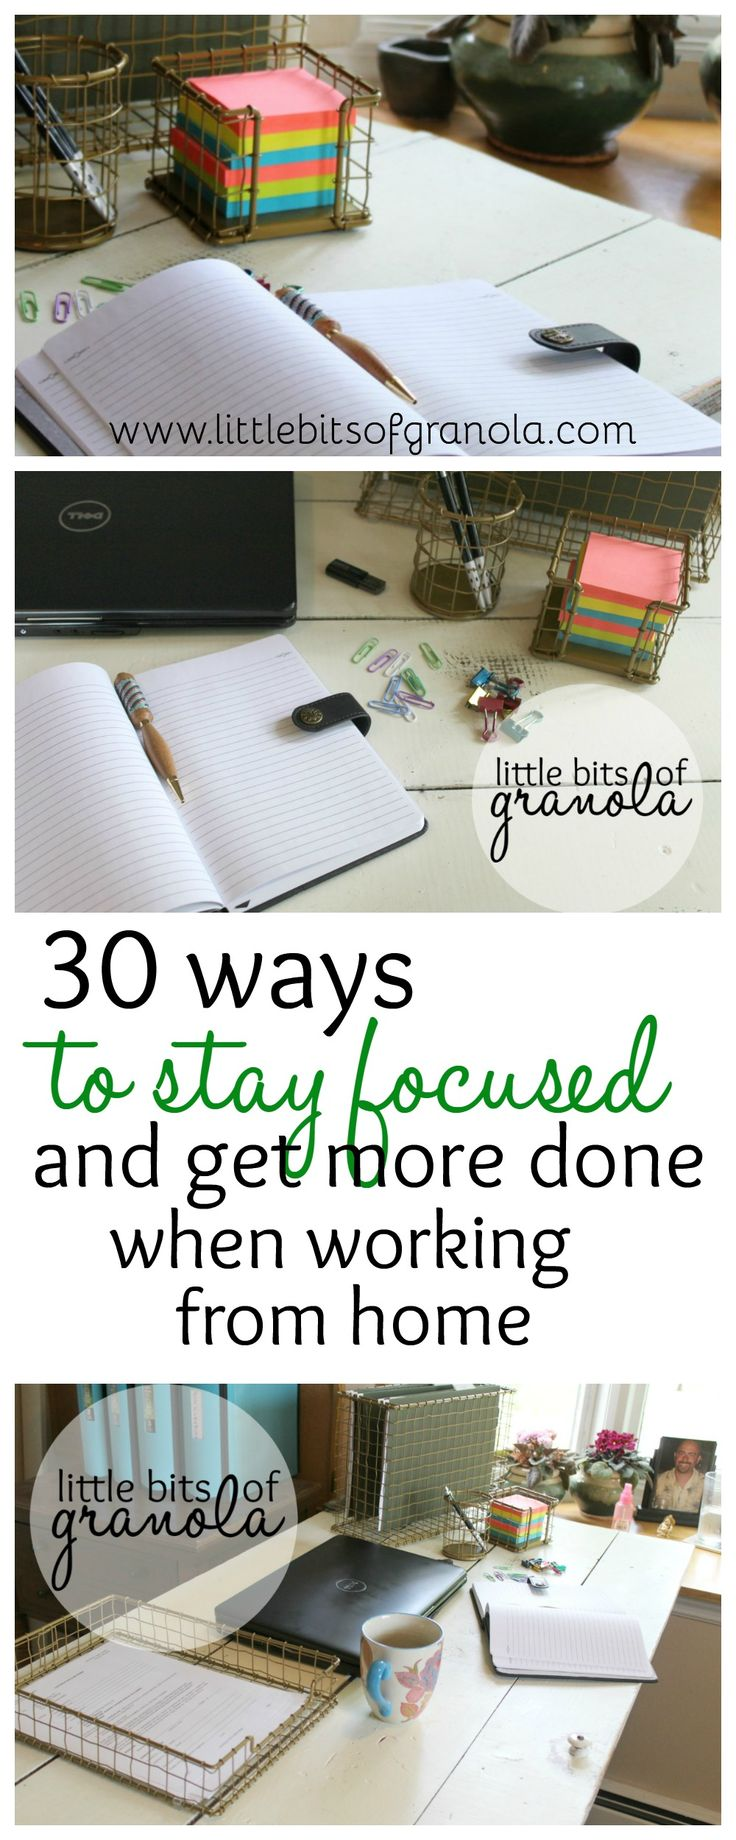 There are SO MANY distractions when you work from home! This is a terrific list of tips for staying focused.